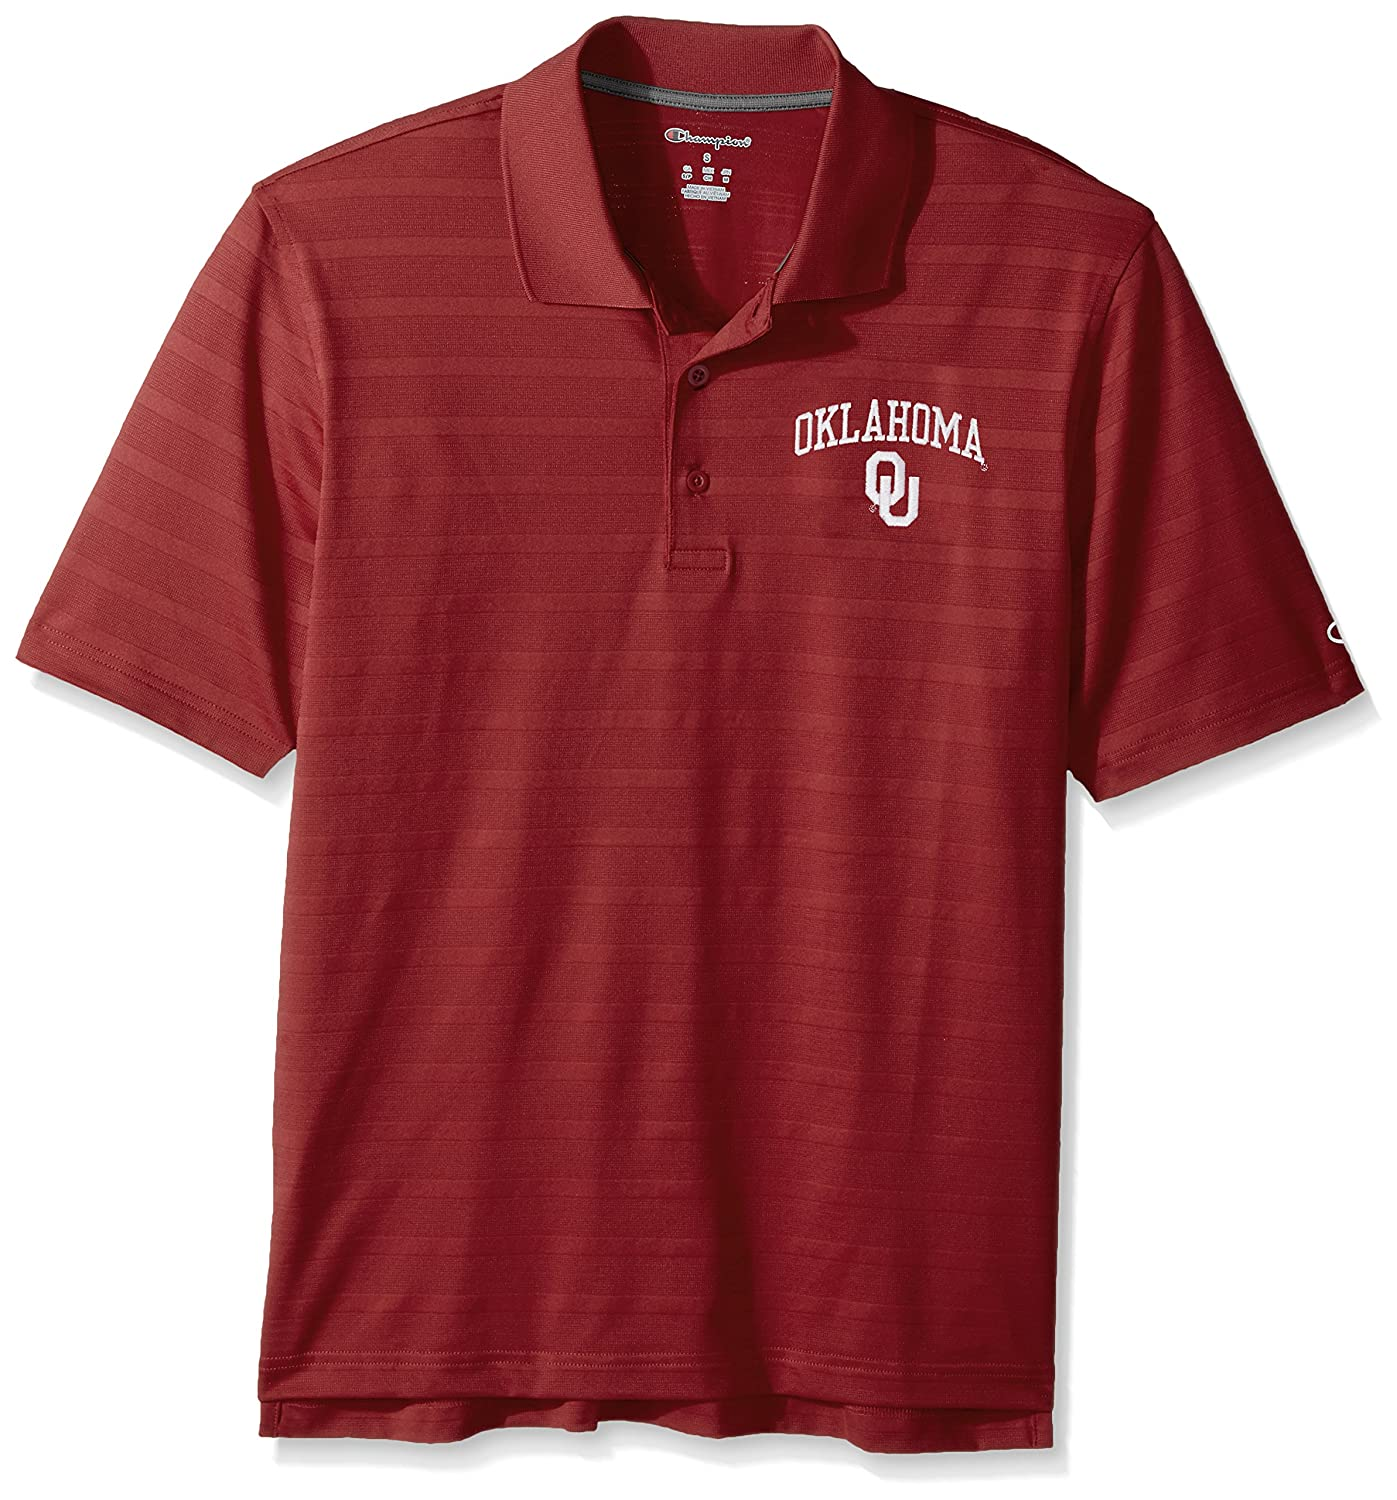 Oklahoma Sooners NCAA Champion Mens Textured Solid Polo X-Large